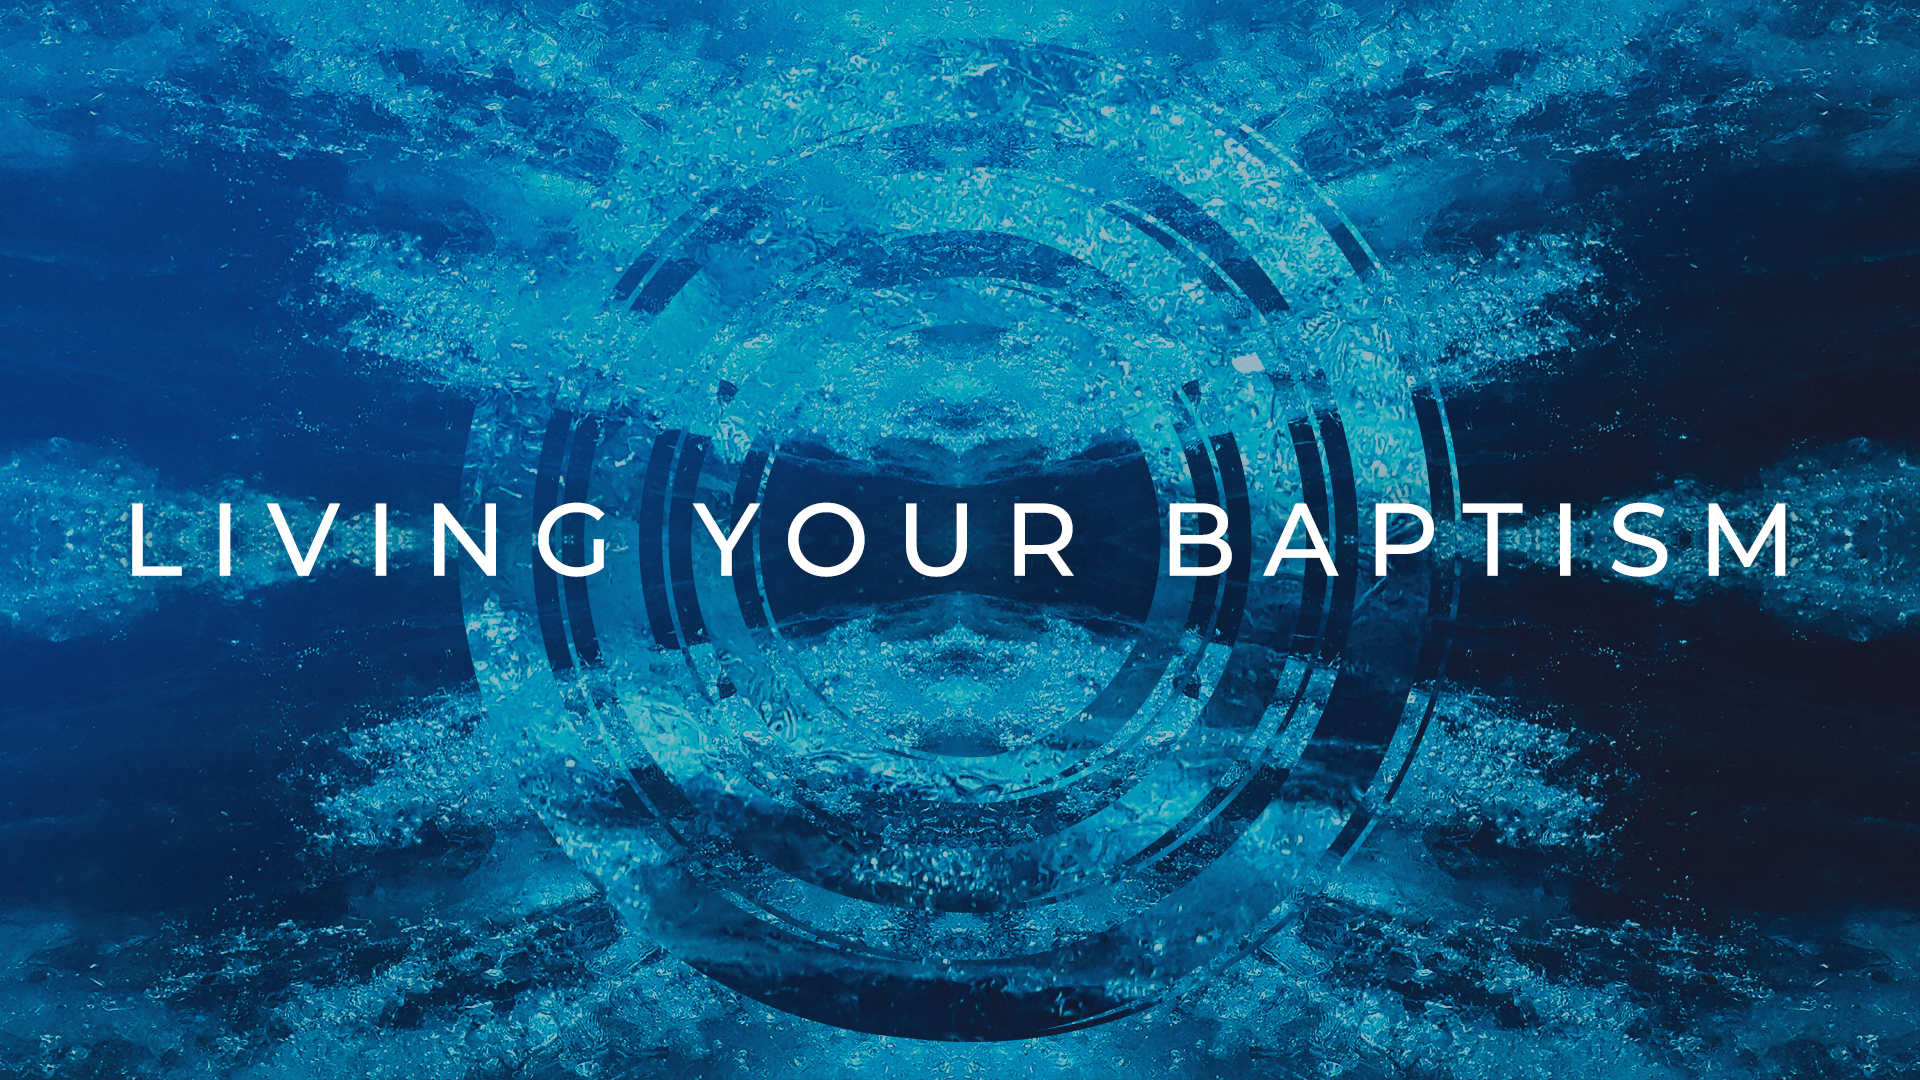 Living Your Baptism Title.jpg